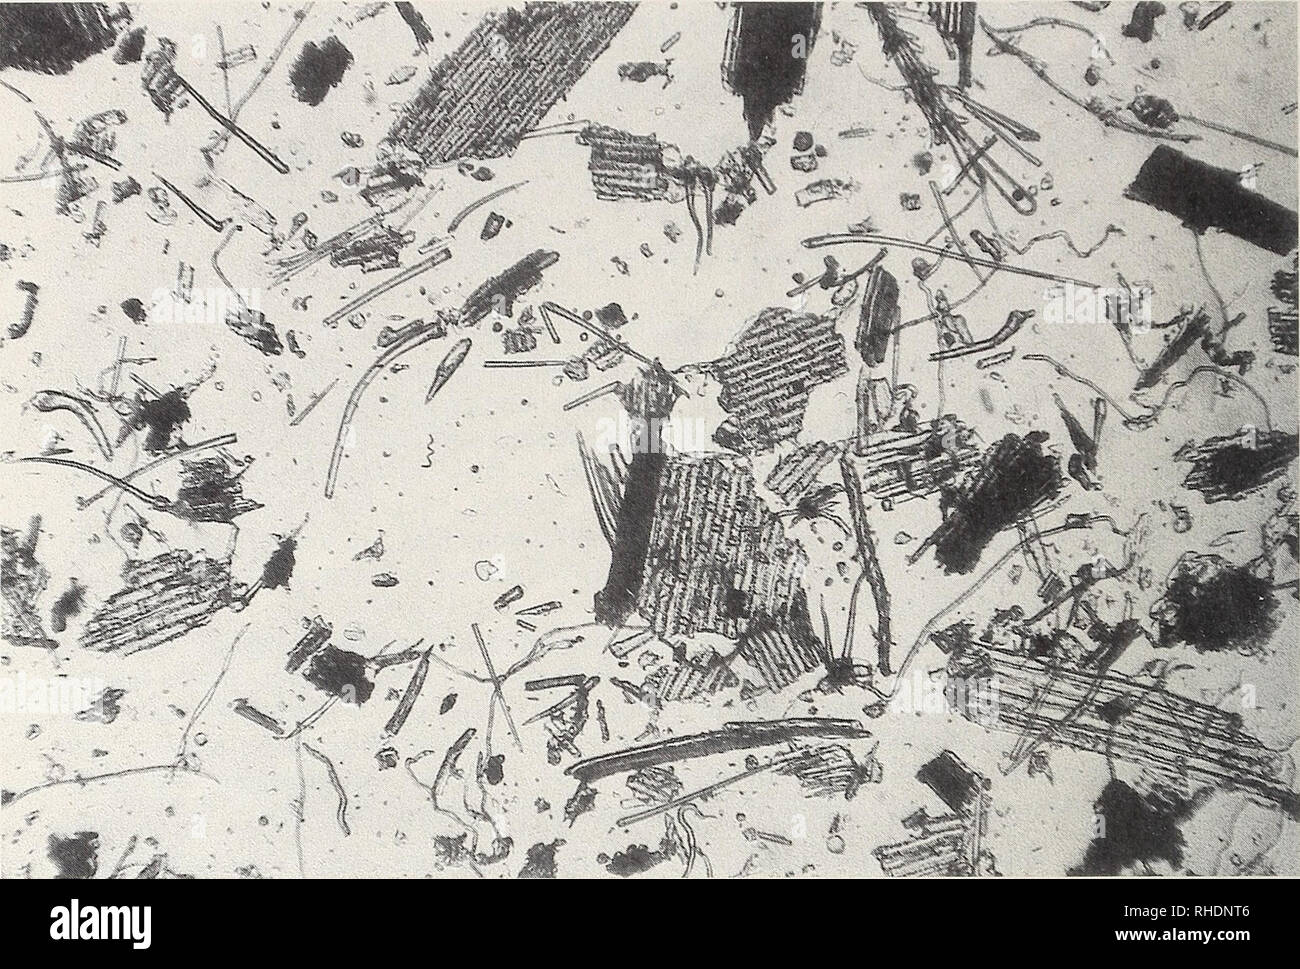 . Bonner zoologische Monographien. Zoology. 234. Fig. 1: Microscopic view of cell fragments from a faecal sample of Otomys typus. The larger cell compartments, with long, nearly rectangular cells, are Festuca pilgeri. disjunct, mainly restricted to montane habitats in tropical Africa and to South African grasslands. These distribution patterns seem to be the results of climatic changes and competition with Murinae, which invaded Africa in the early Pliocene (Denys & Jaeger 1986, Denys 1989). Otomys barbouri is endemic to the Afroalpine zone of Mt Elgon. This species was described by Lawren - Stock Image